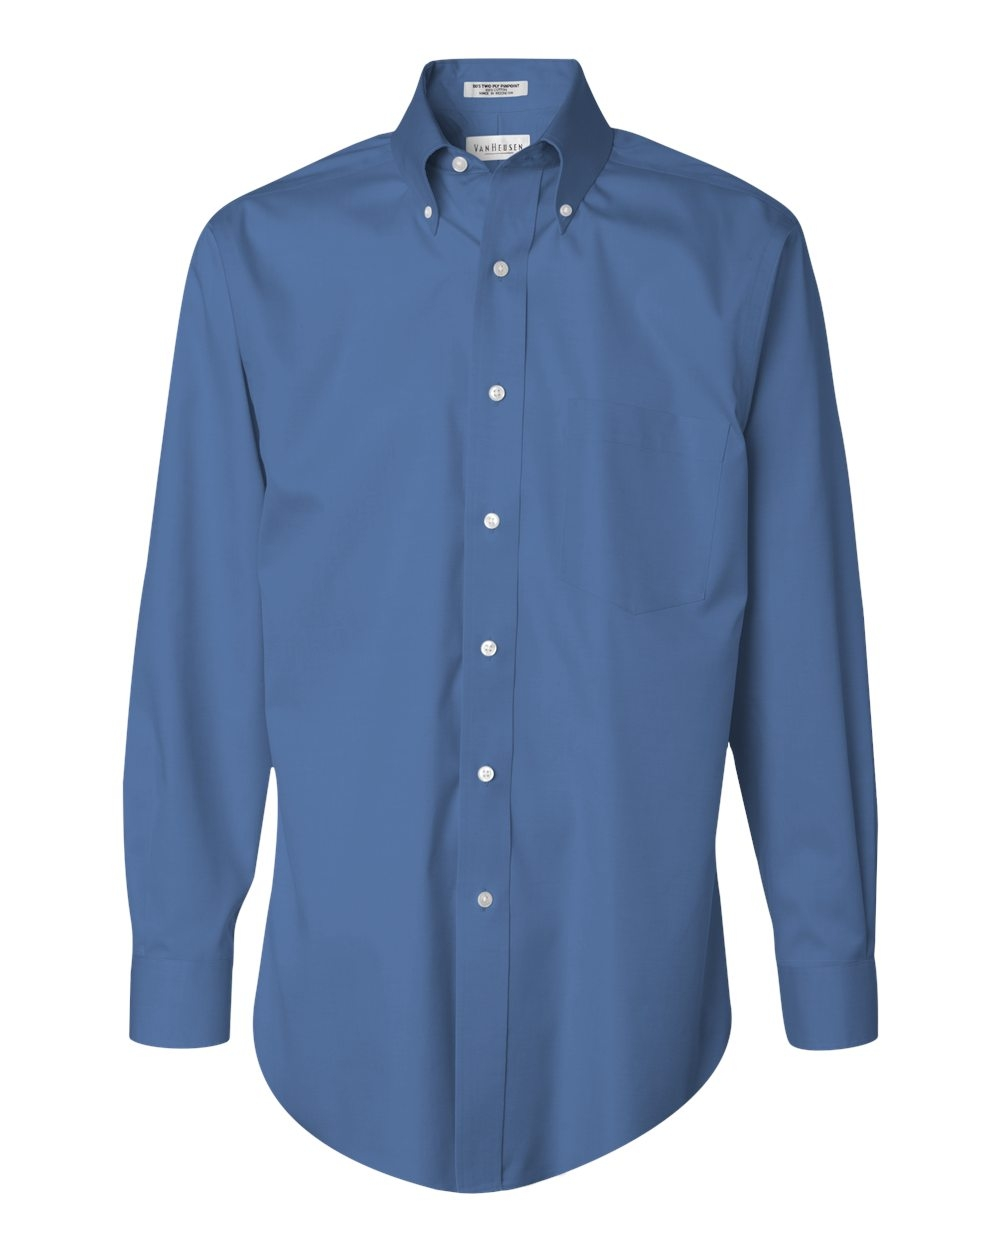 Van Heusen - 13v00143 Van Heusen - Mens No-Iron Pinpoint Oxford Shirt, Pensacola, Embroidery, Screen Printing, Logo Masters International